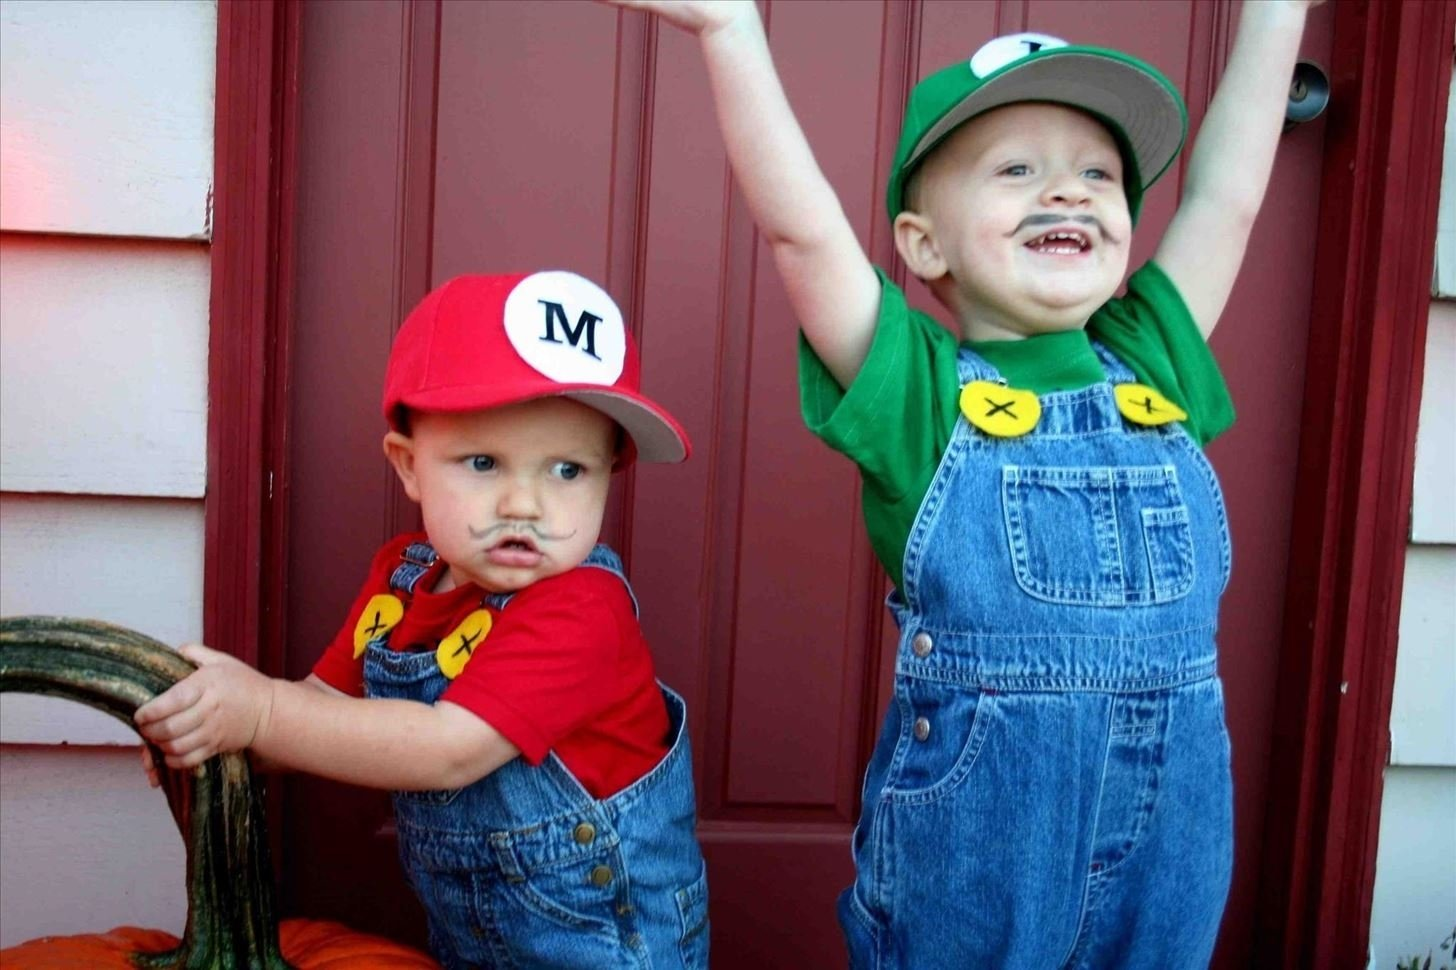 10 Stylish Great Homemade Halloween Costume Ideas 10 cheap easy awesome diy halloween costumes for kids homemade 7 2020